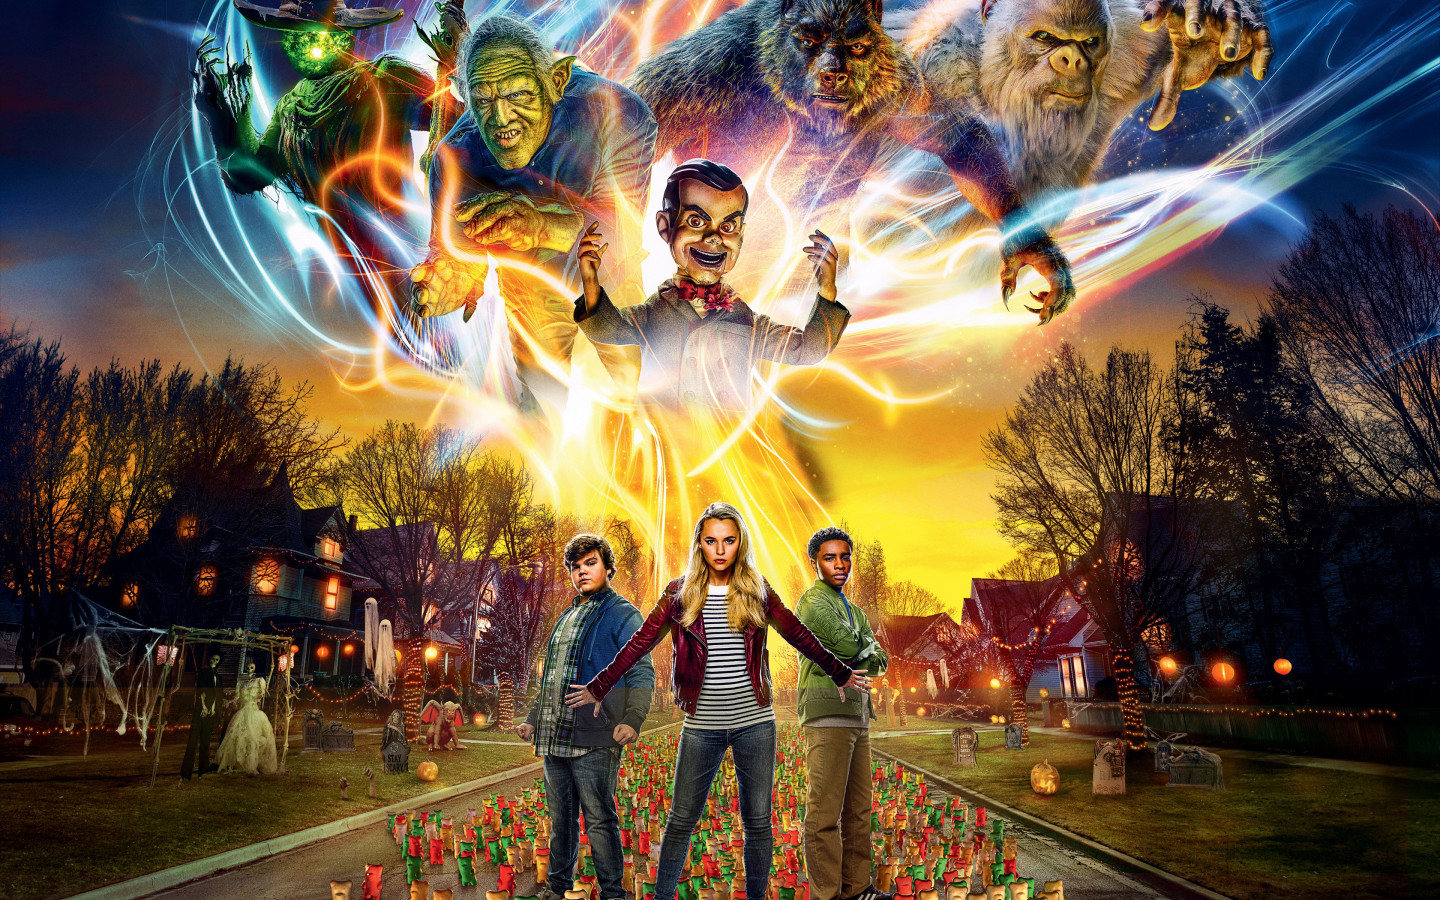 Goosebumps 2: Haunted Halloween | 1440x900 wallpaper